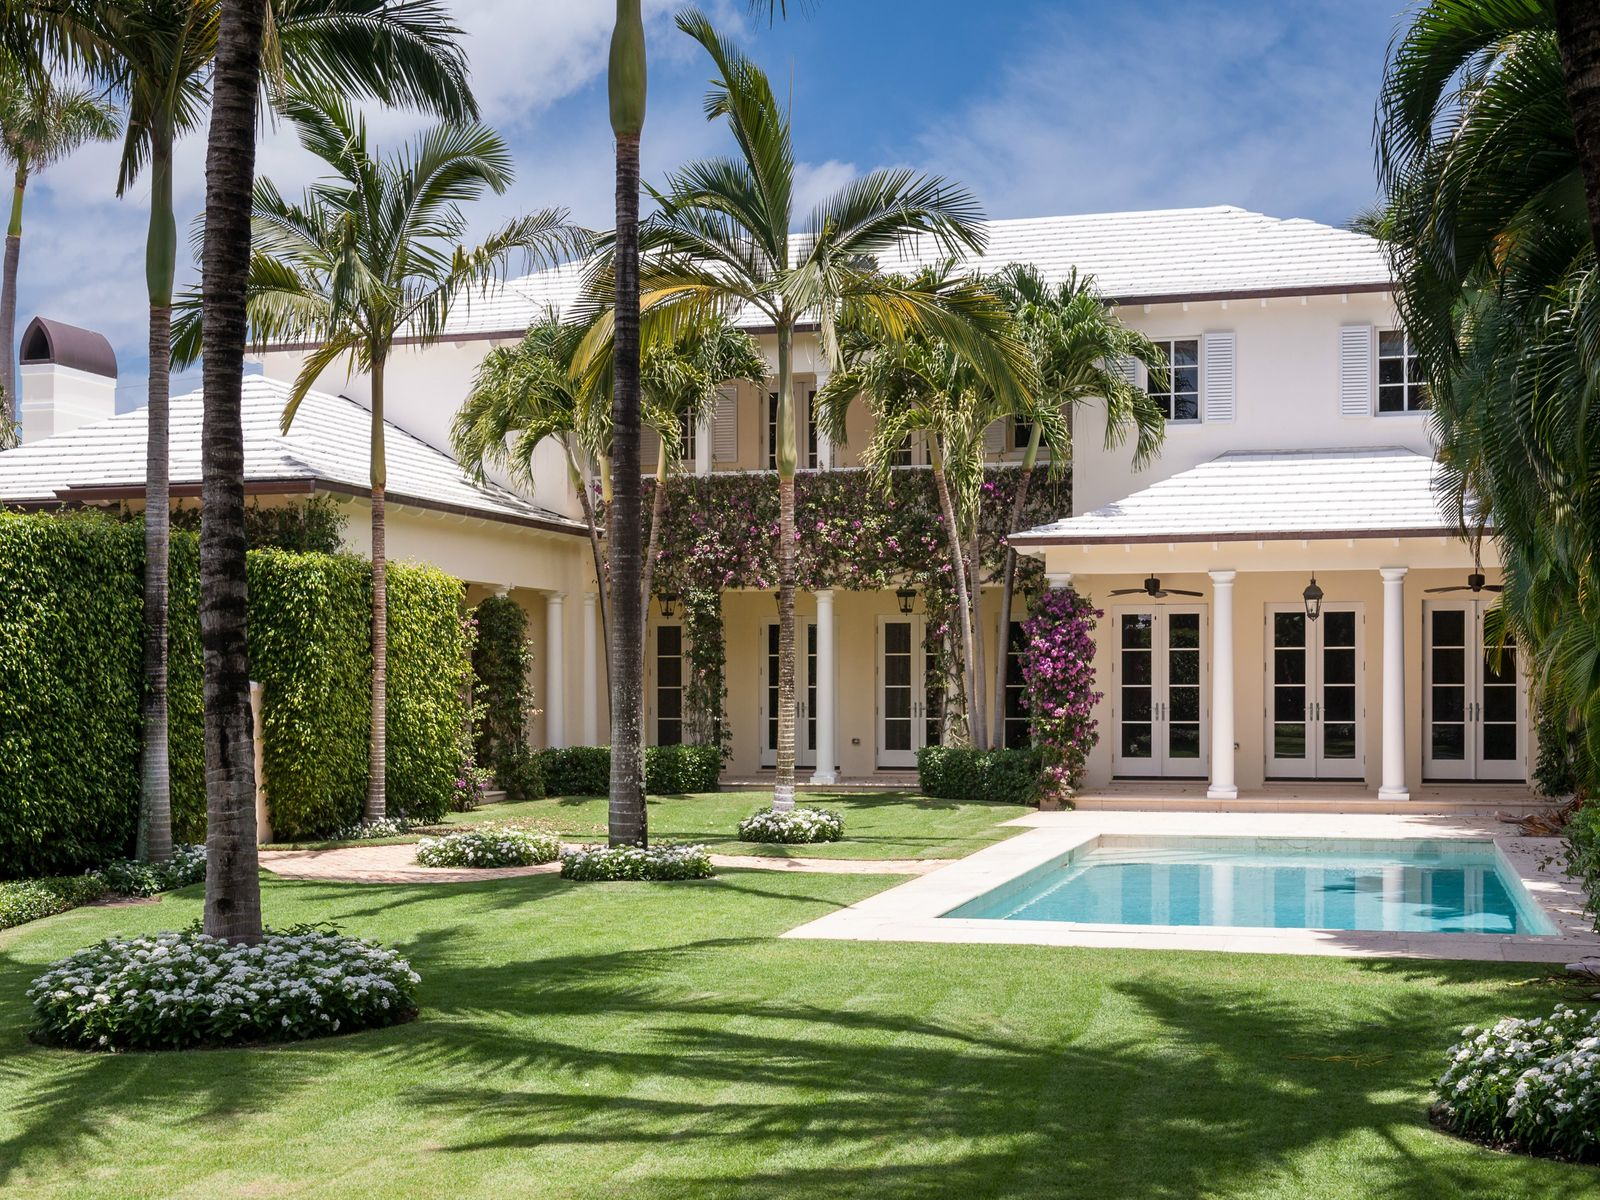 Palm Beach Perfection, Palm Beach FL Single Family Home - Palm Beach Real Estate